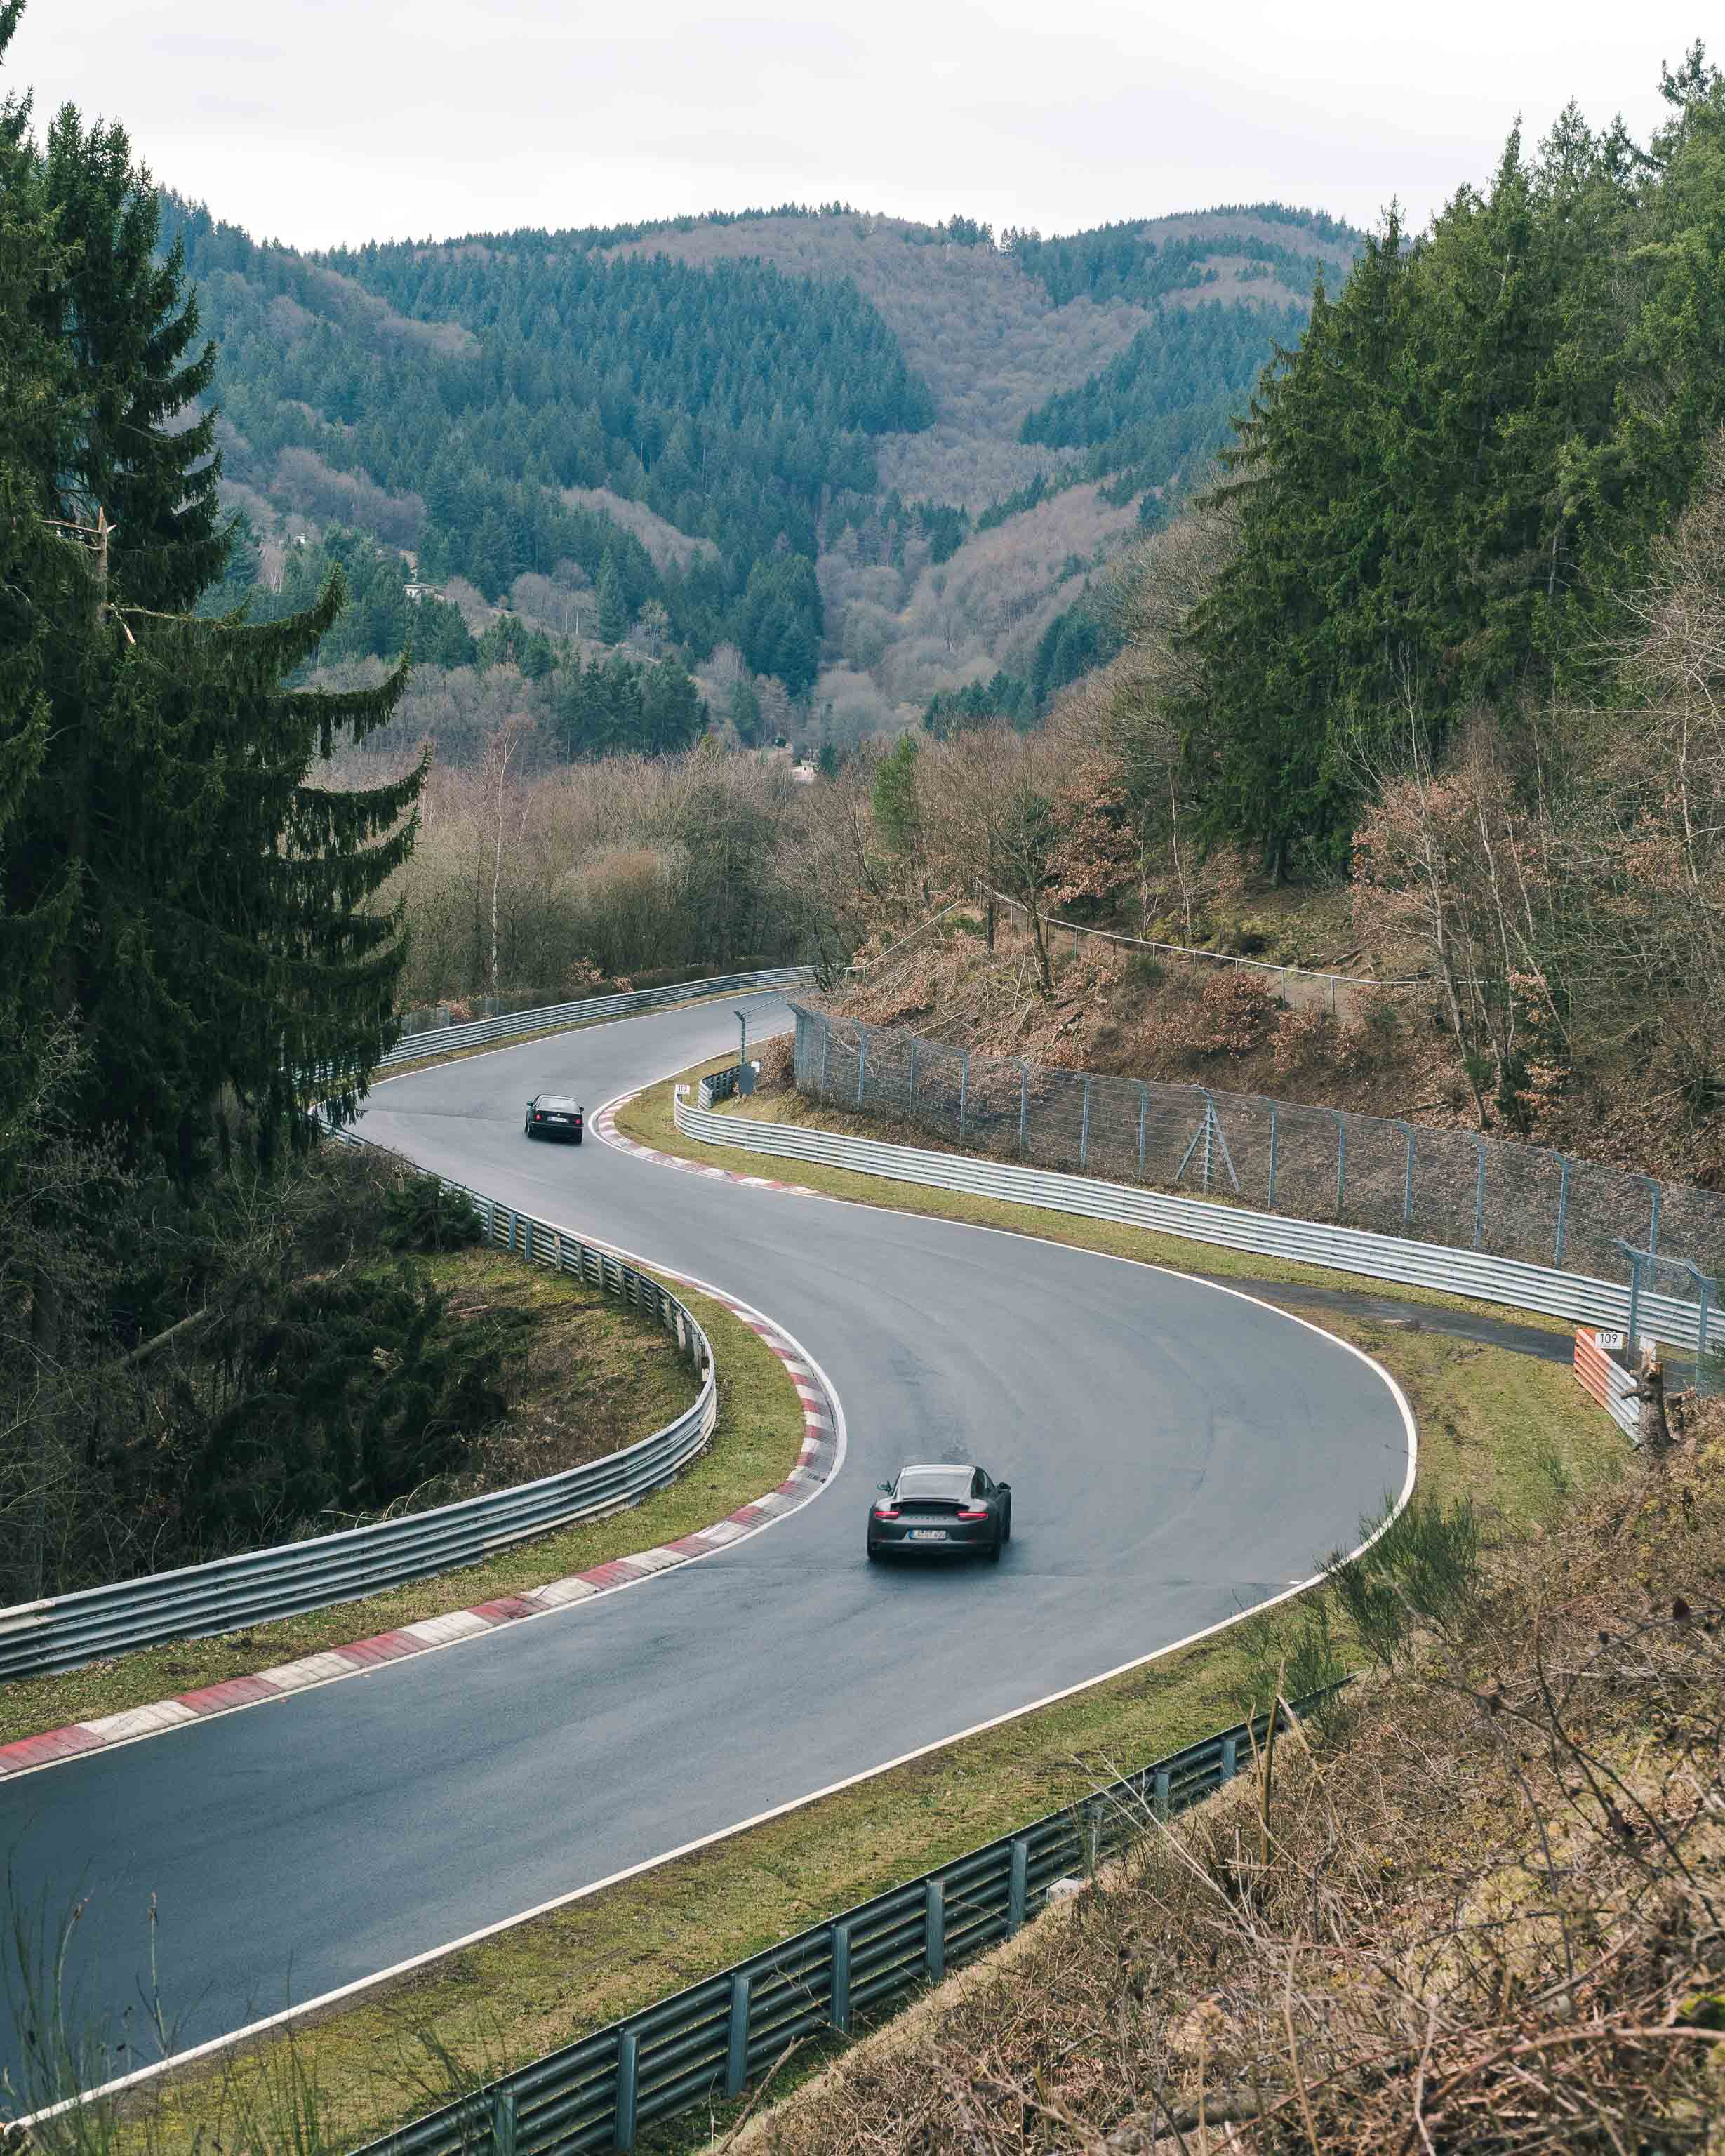 Chicane on the way to Miss-Hit-Miss